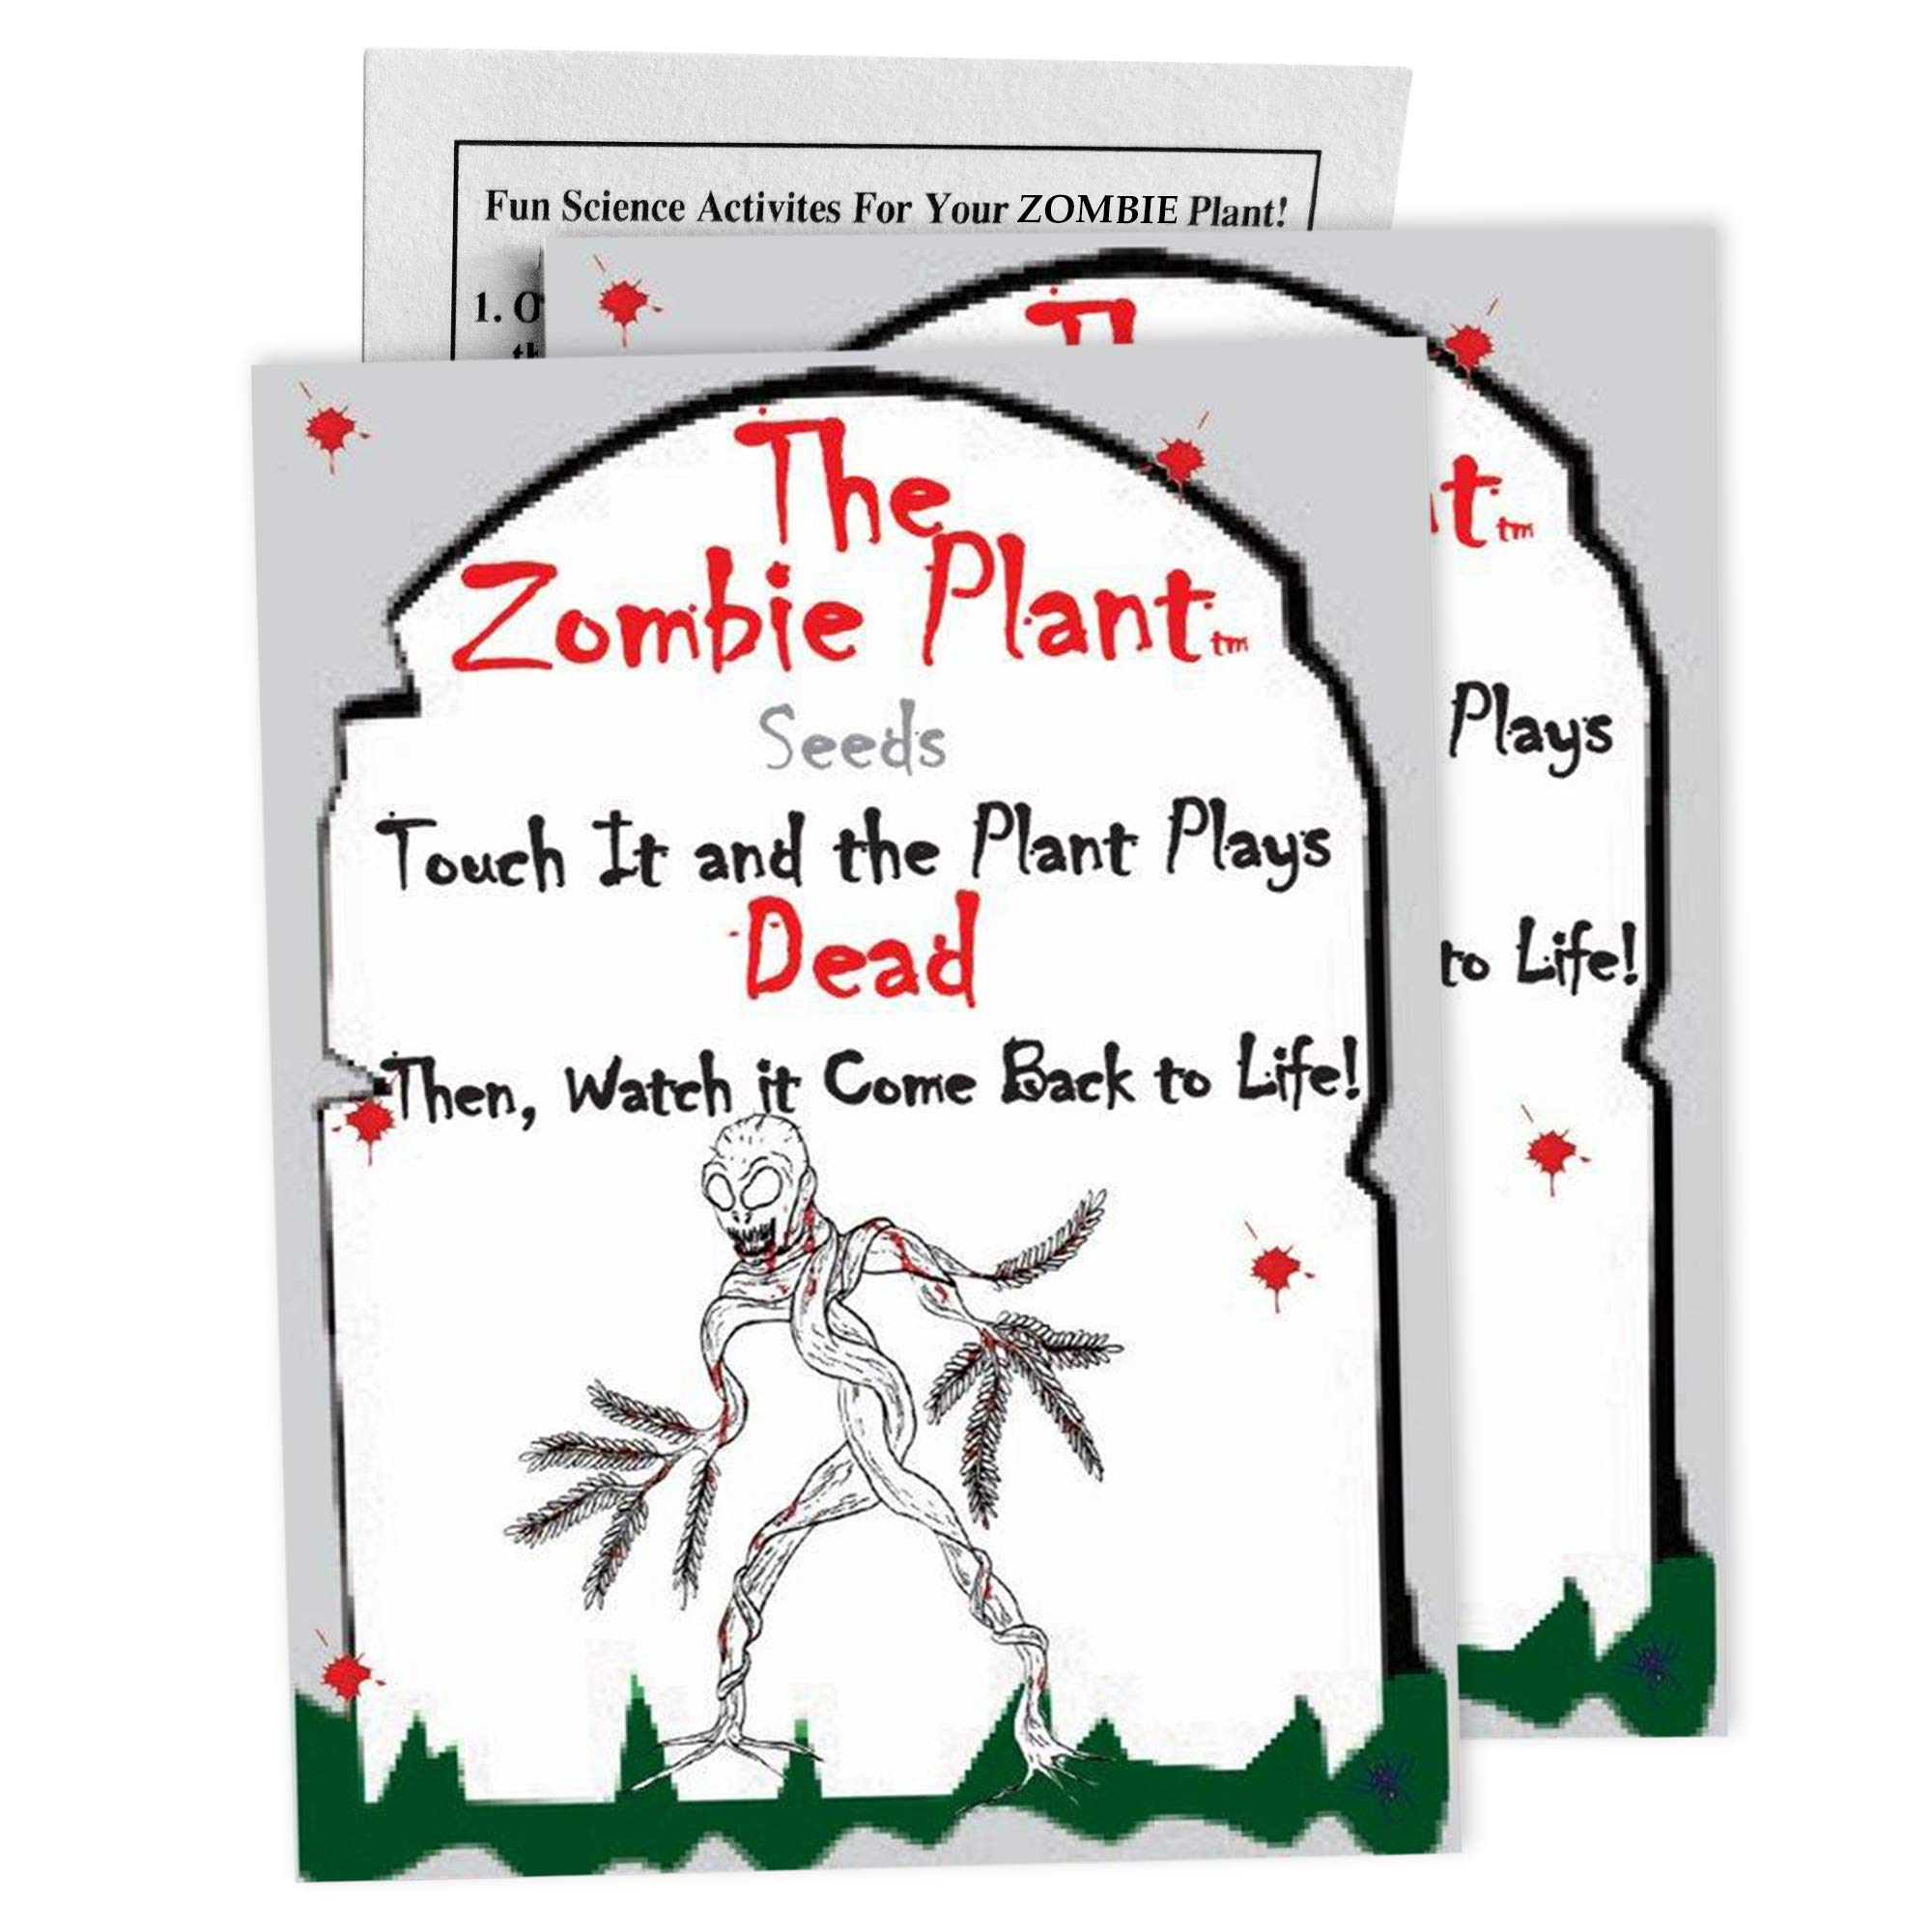 "Zombie Plant Seed Packets (2) - Unique Easter Egg Stuffer or Party Favor. Comes with Ten Fun Ideas to Do with Your Zombie Plant (It ""Plays Dead"" When You Touch It!)"